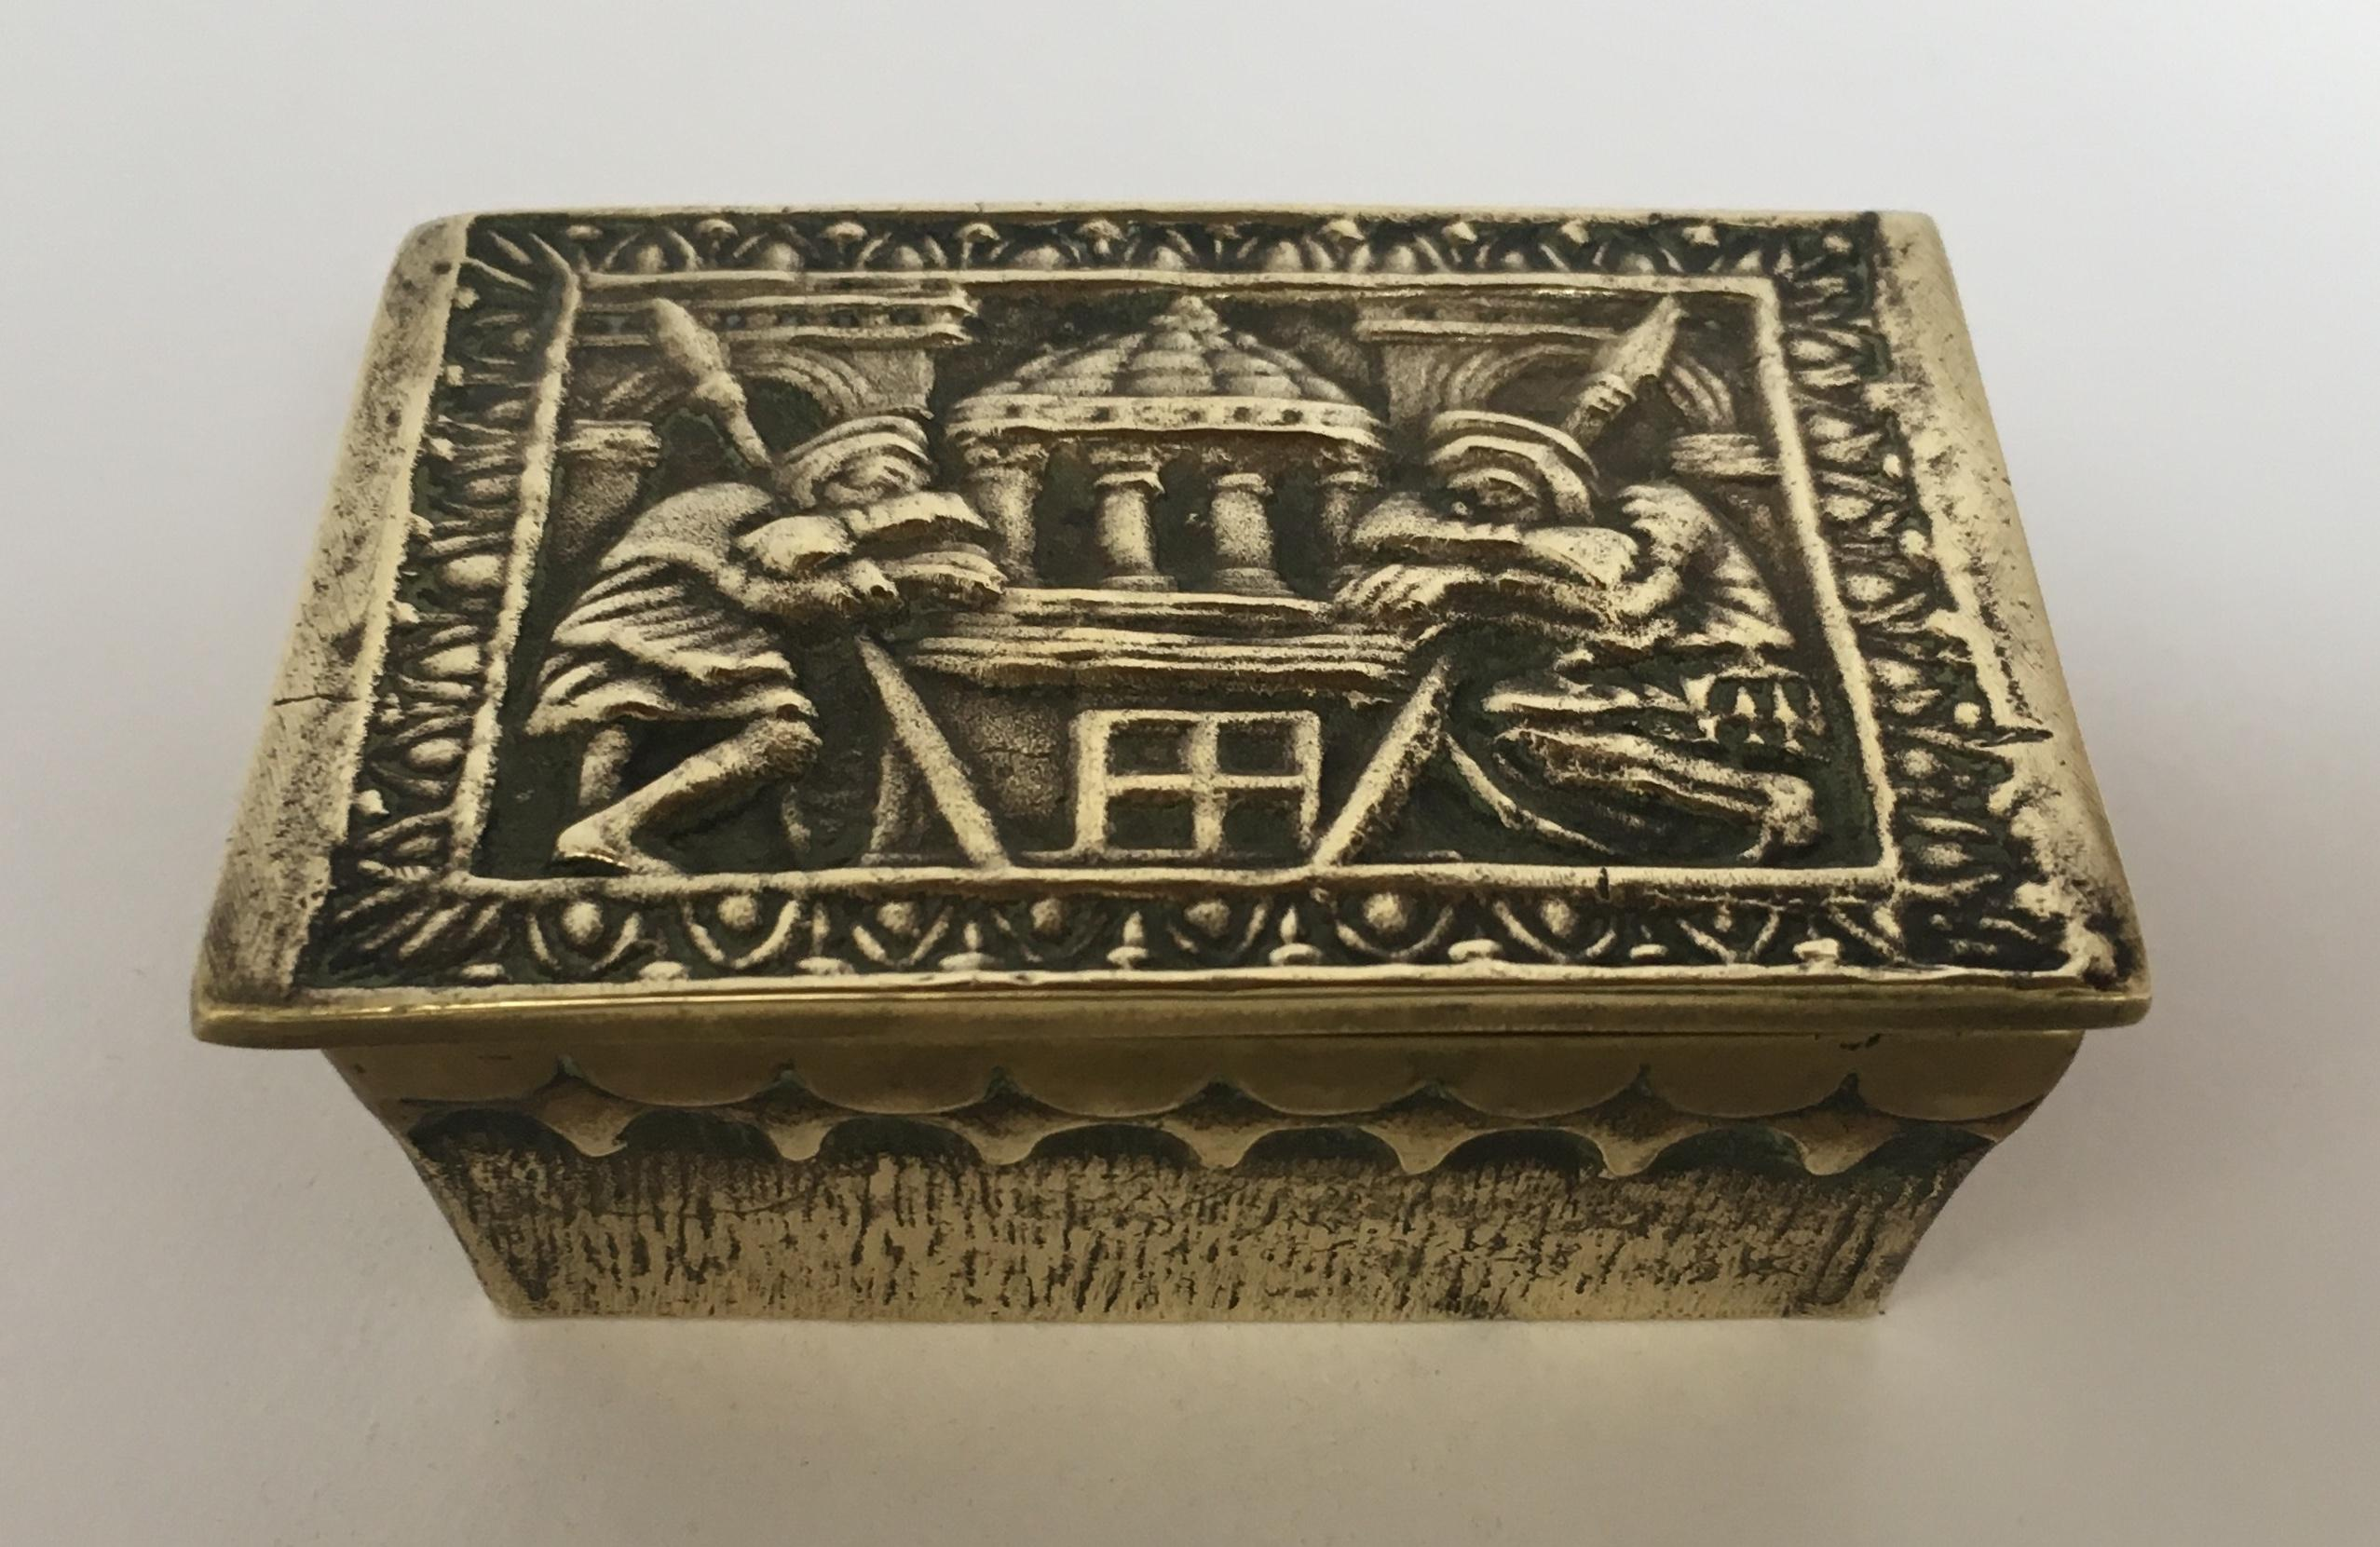 Art Deco Style Jewelry Boxes French Bronze Art Deco Jewelry Box By Max Le Verrier